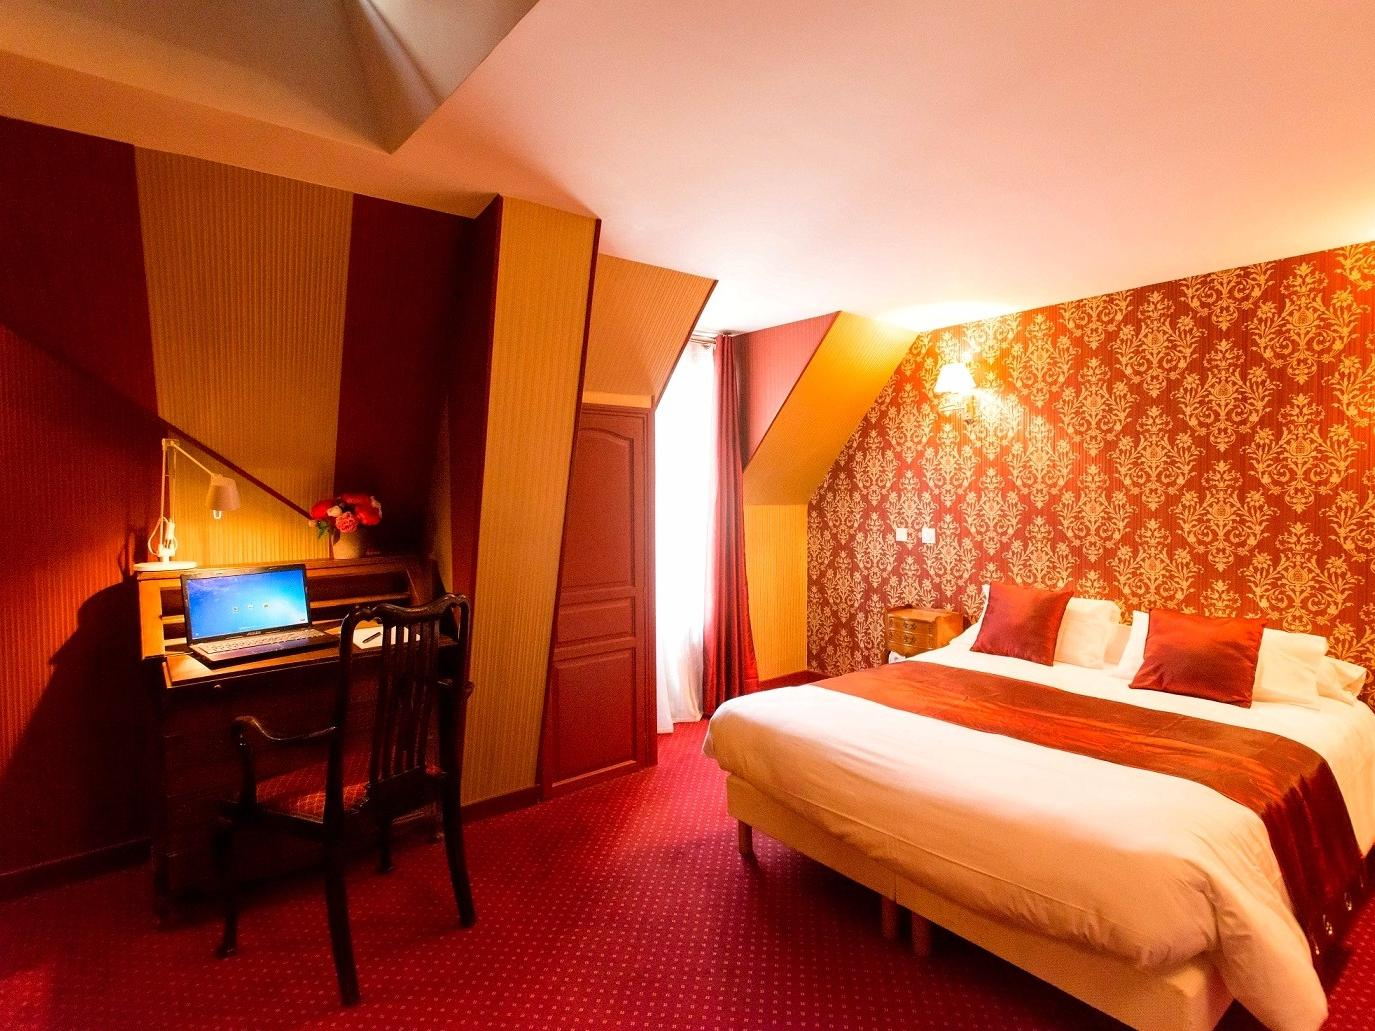 Hotel rabelais logis in Tours